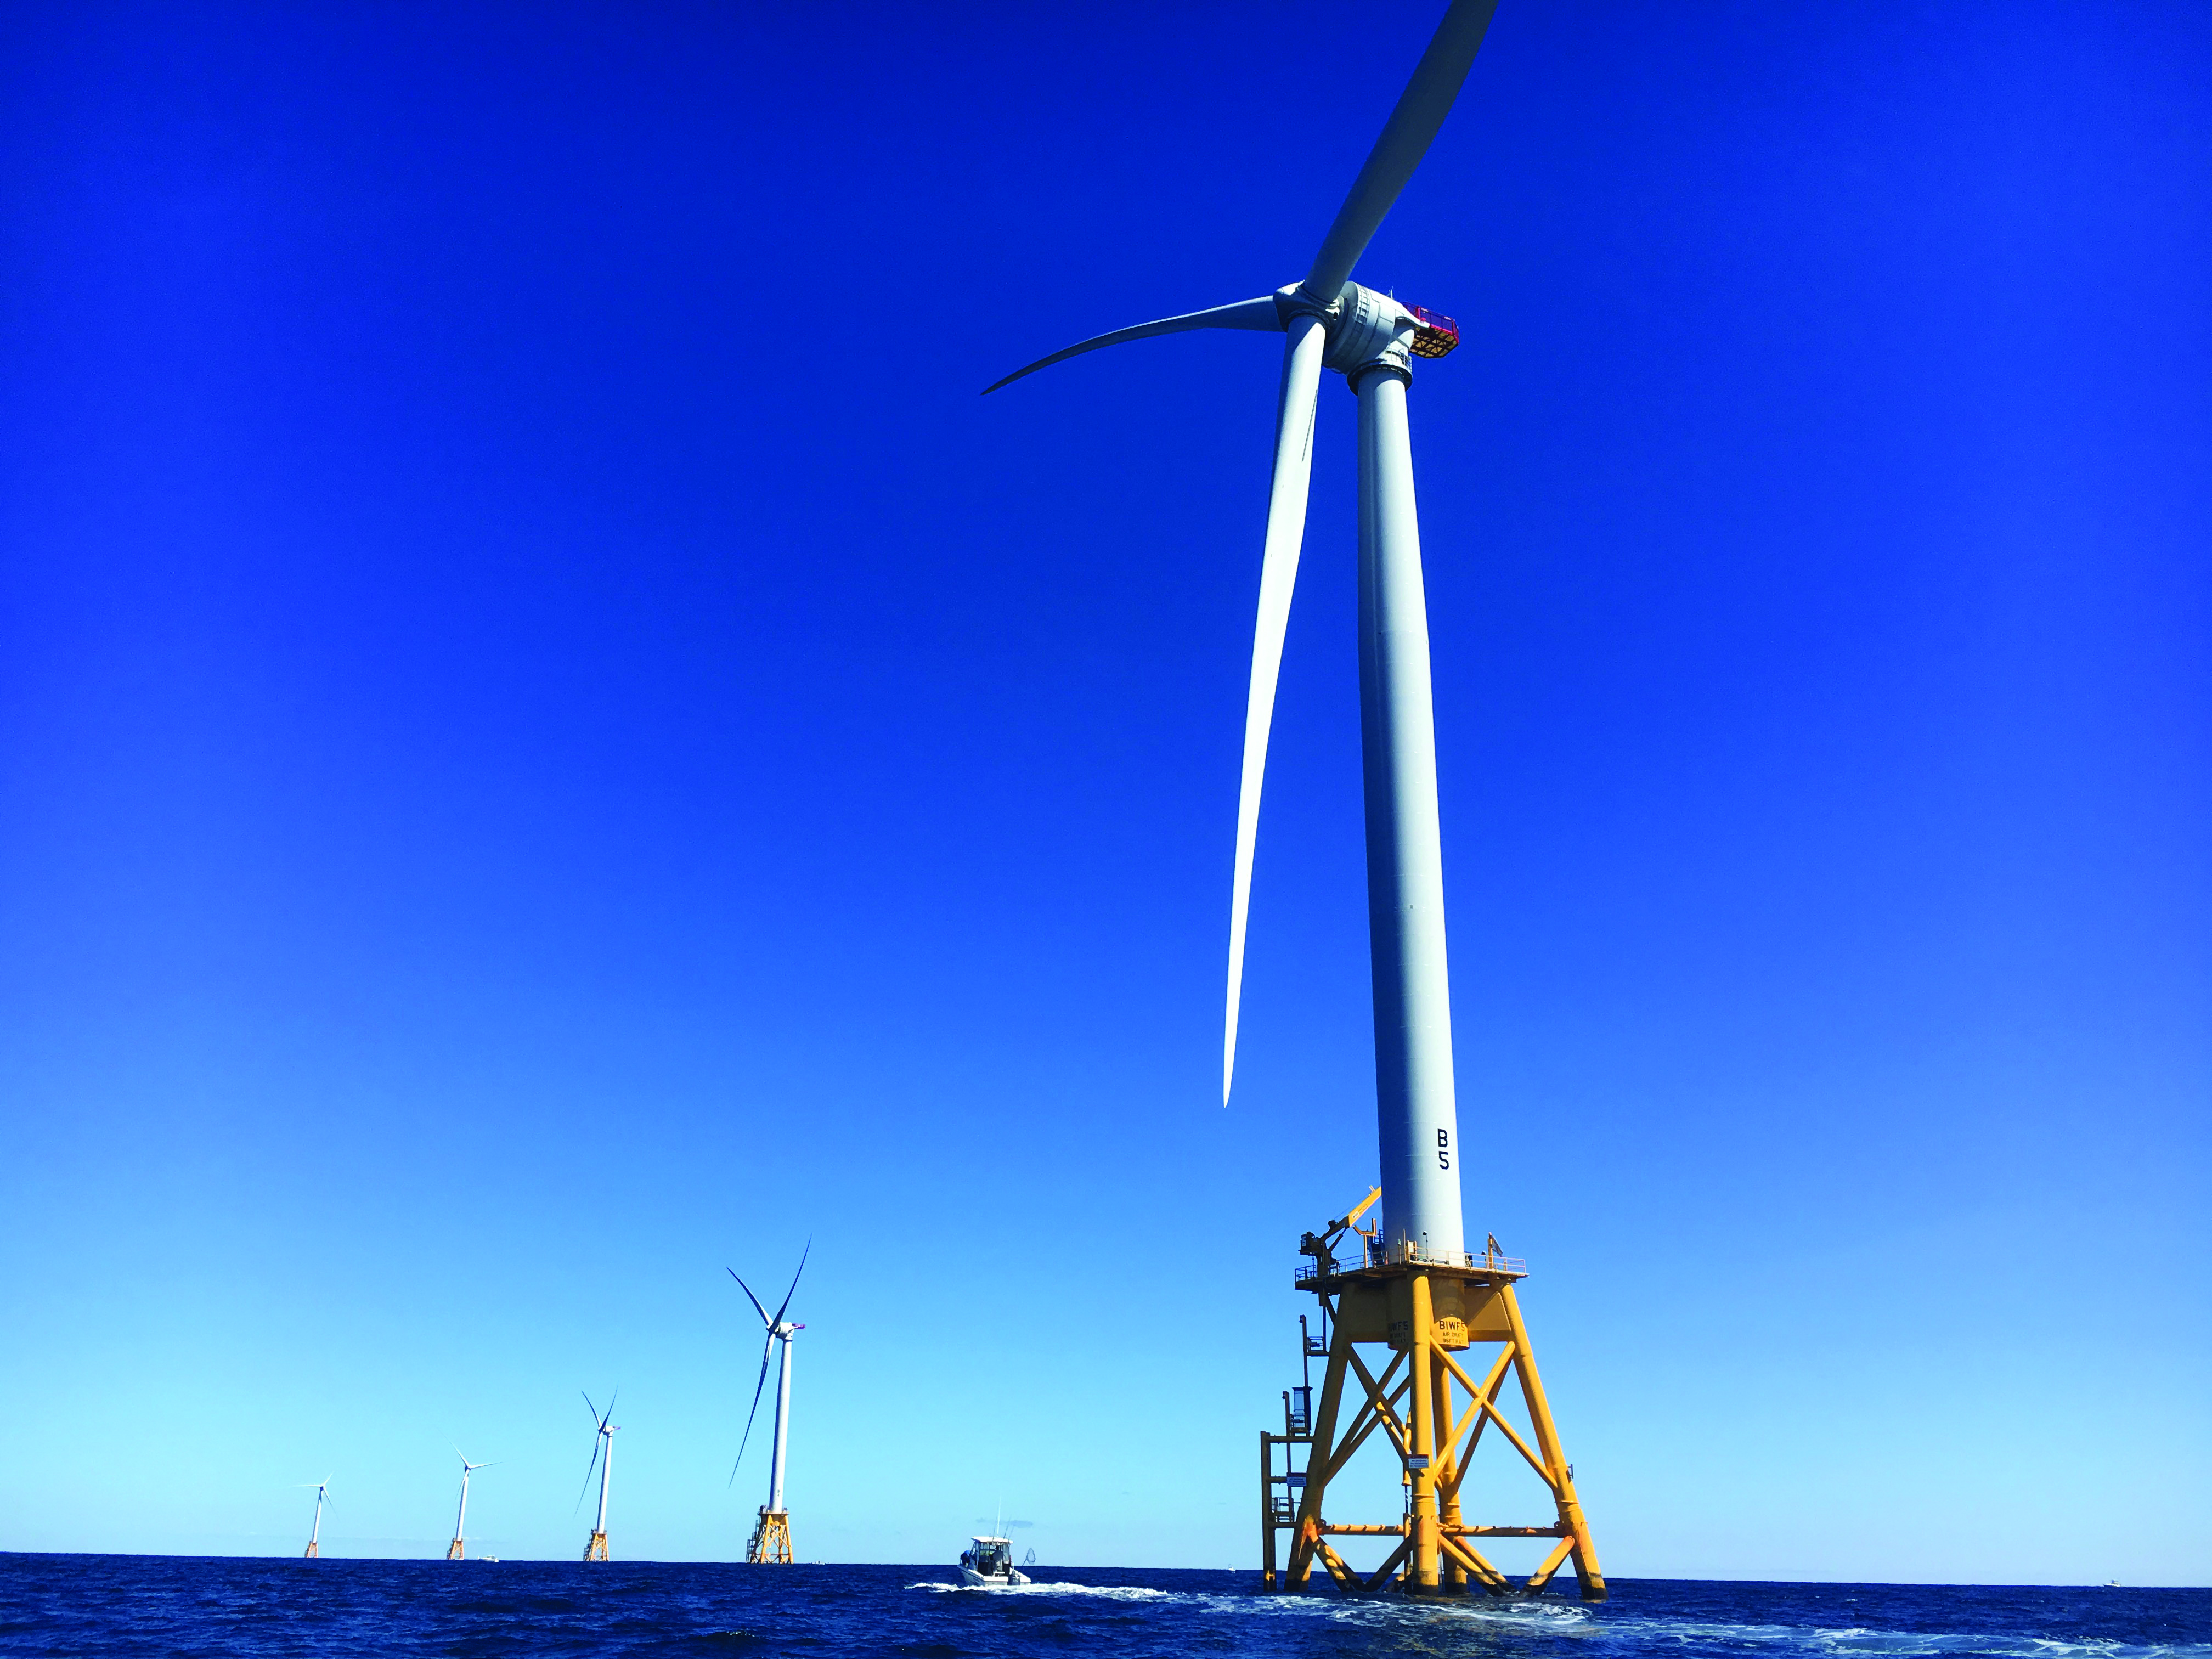 page 3 - Offshore wind - IMG_0999